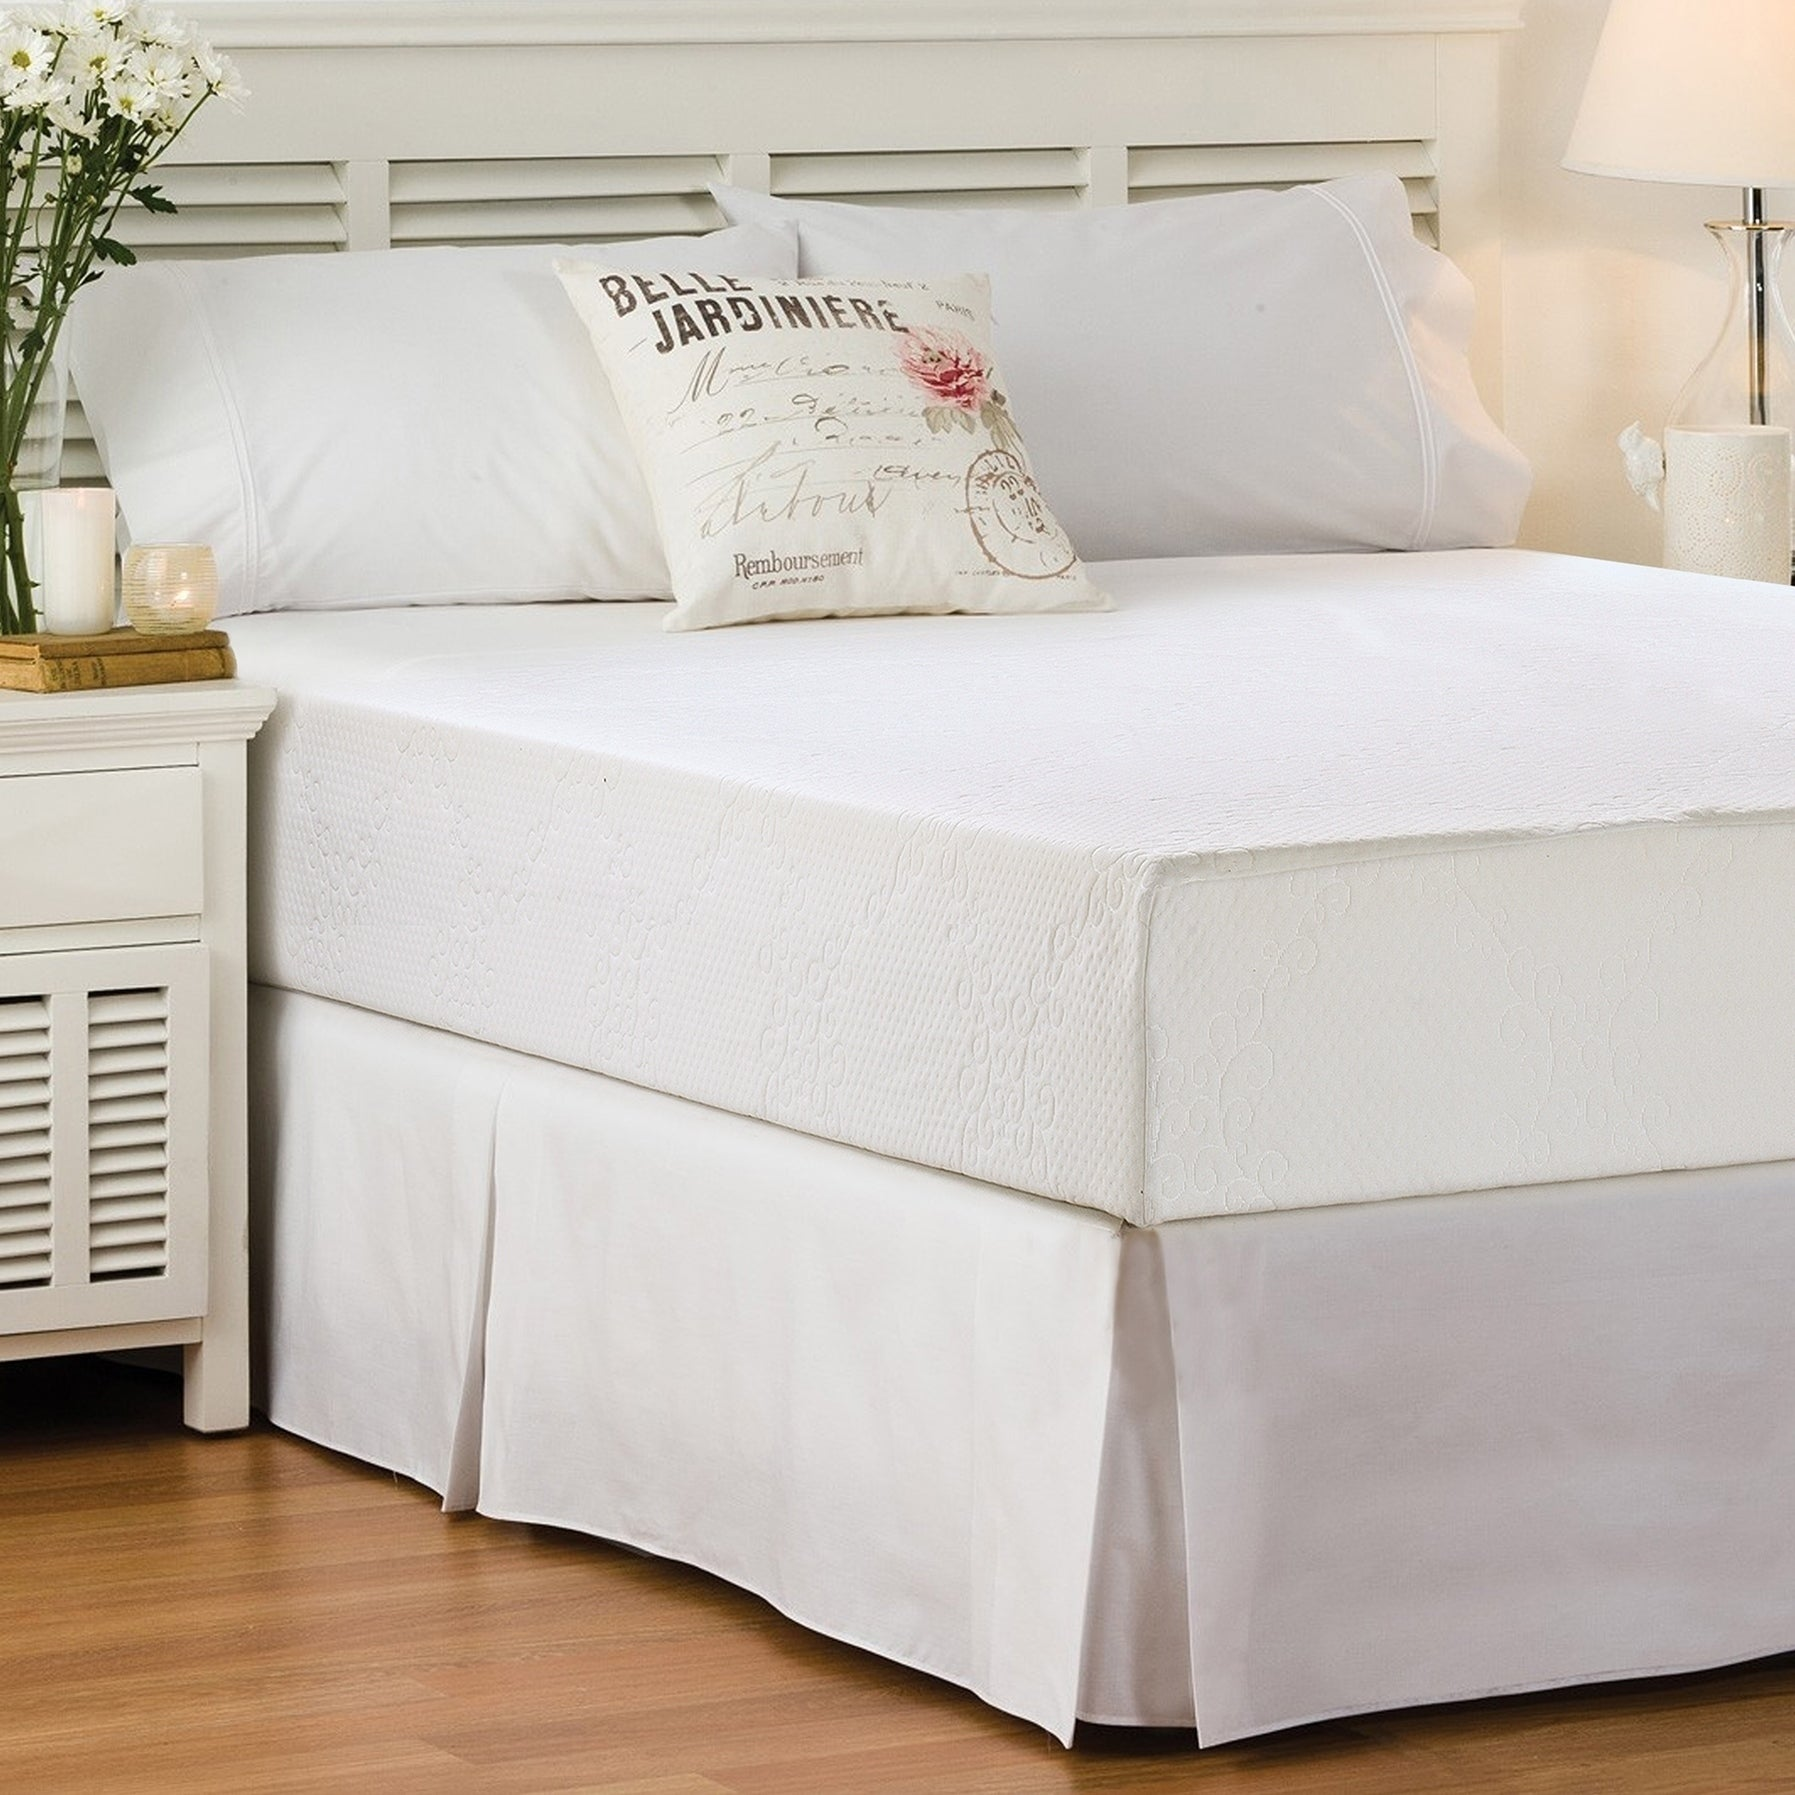 Today's Home Basic Pleated Easy-Fit Microfiber 14-inch Drop Bed Skirt - Thumbnail 0